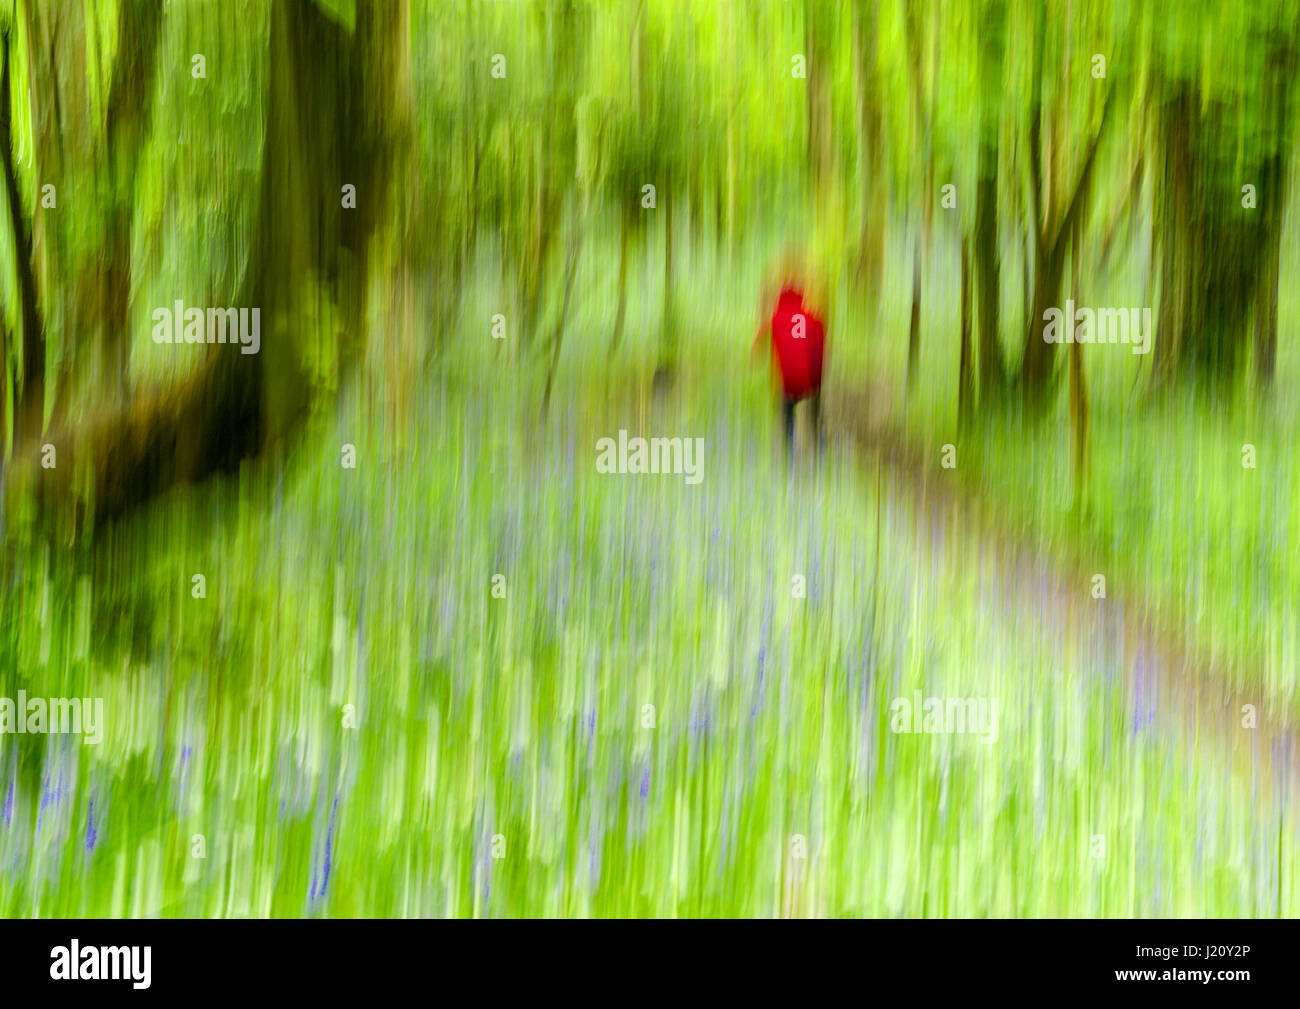 Conceptual Image of man or woman walking through woods - Stock Image